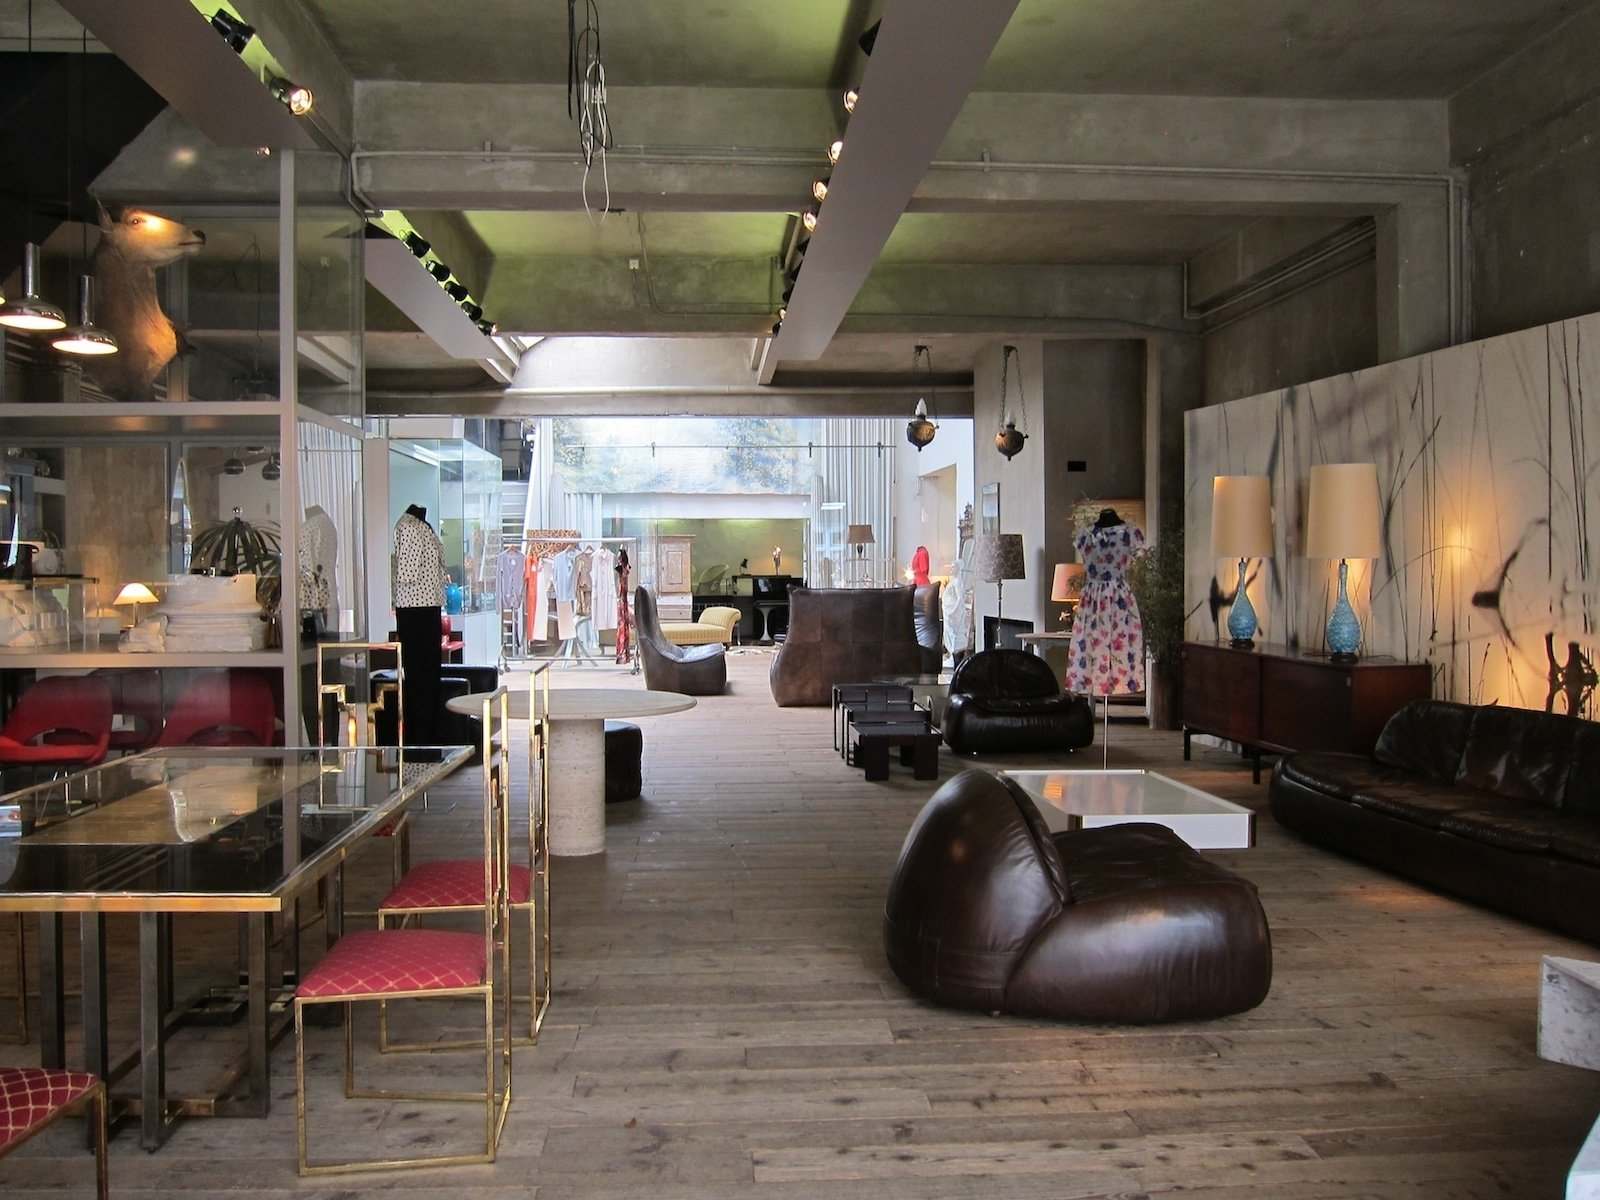 The shops on Kloosterstraat vary from tiny cubbyhole galleries to vast loft-like spaces like this one, an emporium called Viar that sells clothing, accessories, and great vintage furniture.  Best of Belgium: Three Days in Antwerp by Jaime Gillin